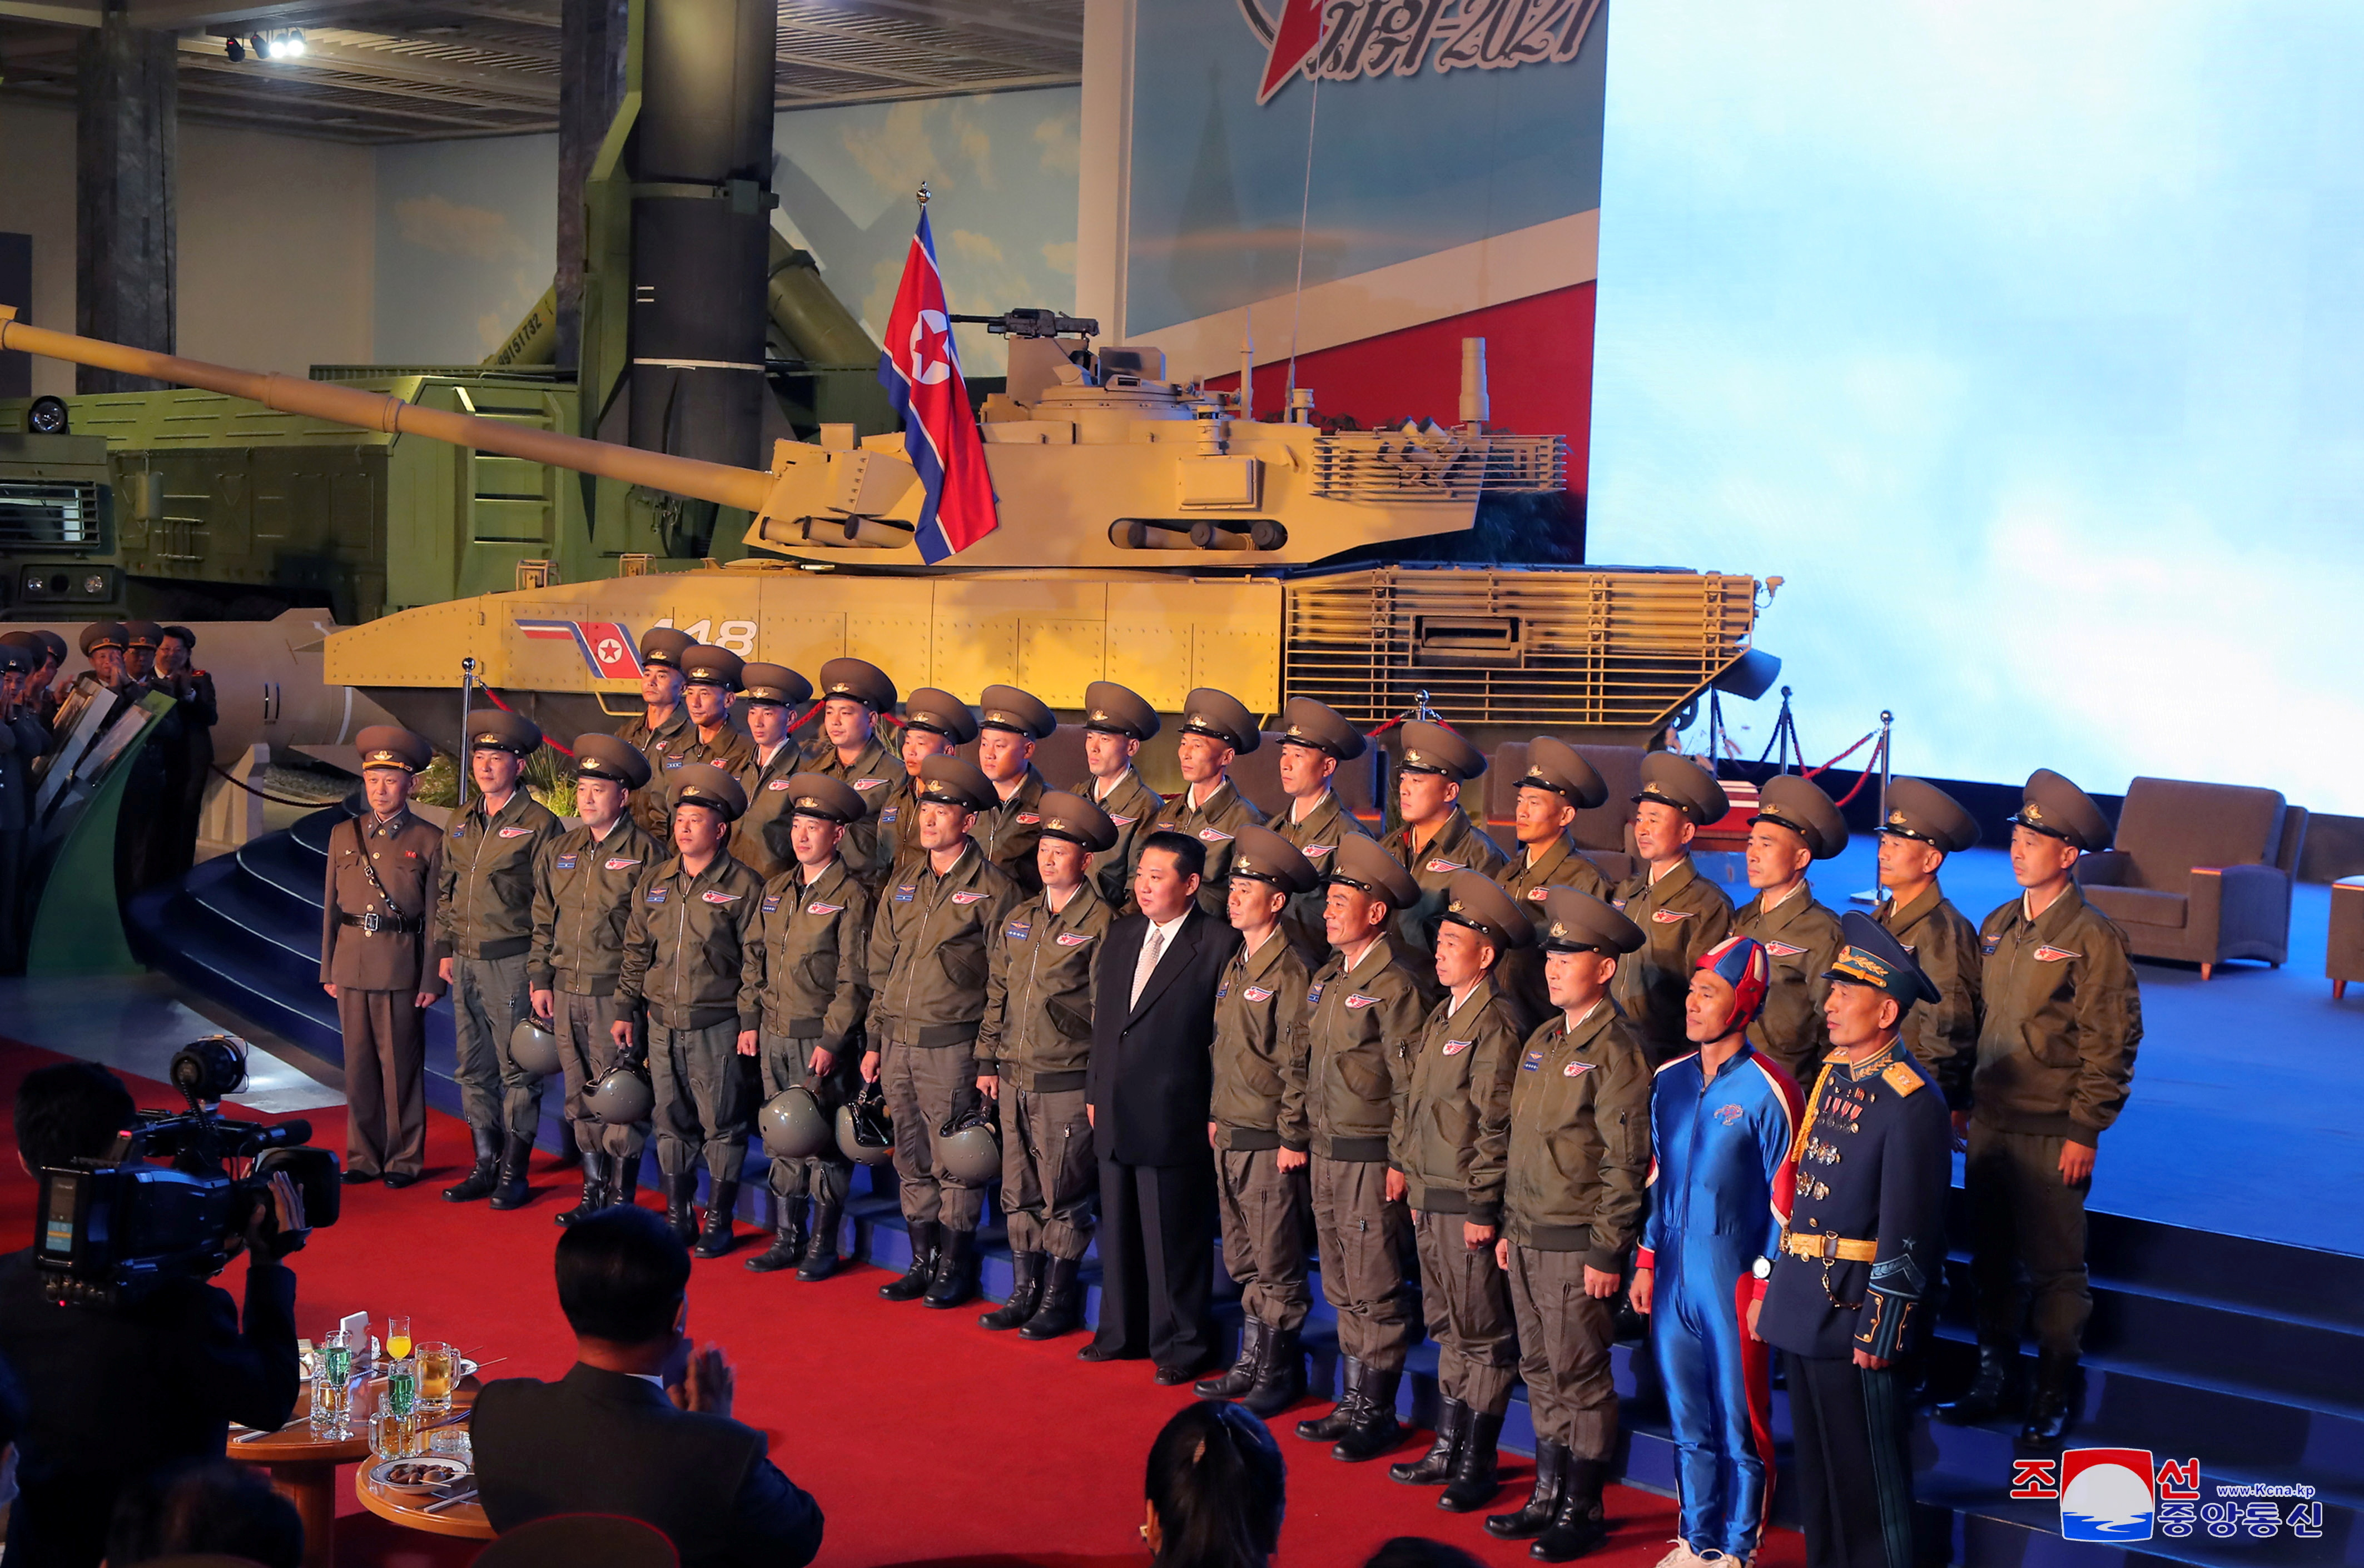 North Korea's leader Kim Jong Un takes pictures with military personnel at the Defence Development Exhibition, in Pyongyang, North Korea, in this undated photo released on October 12, 2021 by North Korea's Korean Central News Agency (KCNA).  KCNA via REUTERS